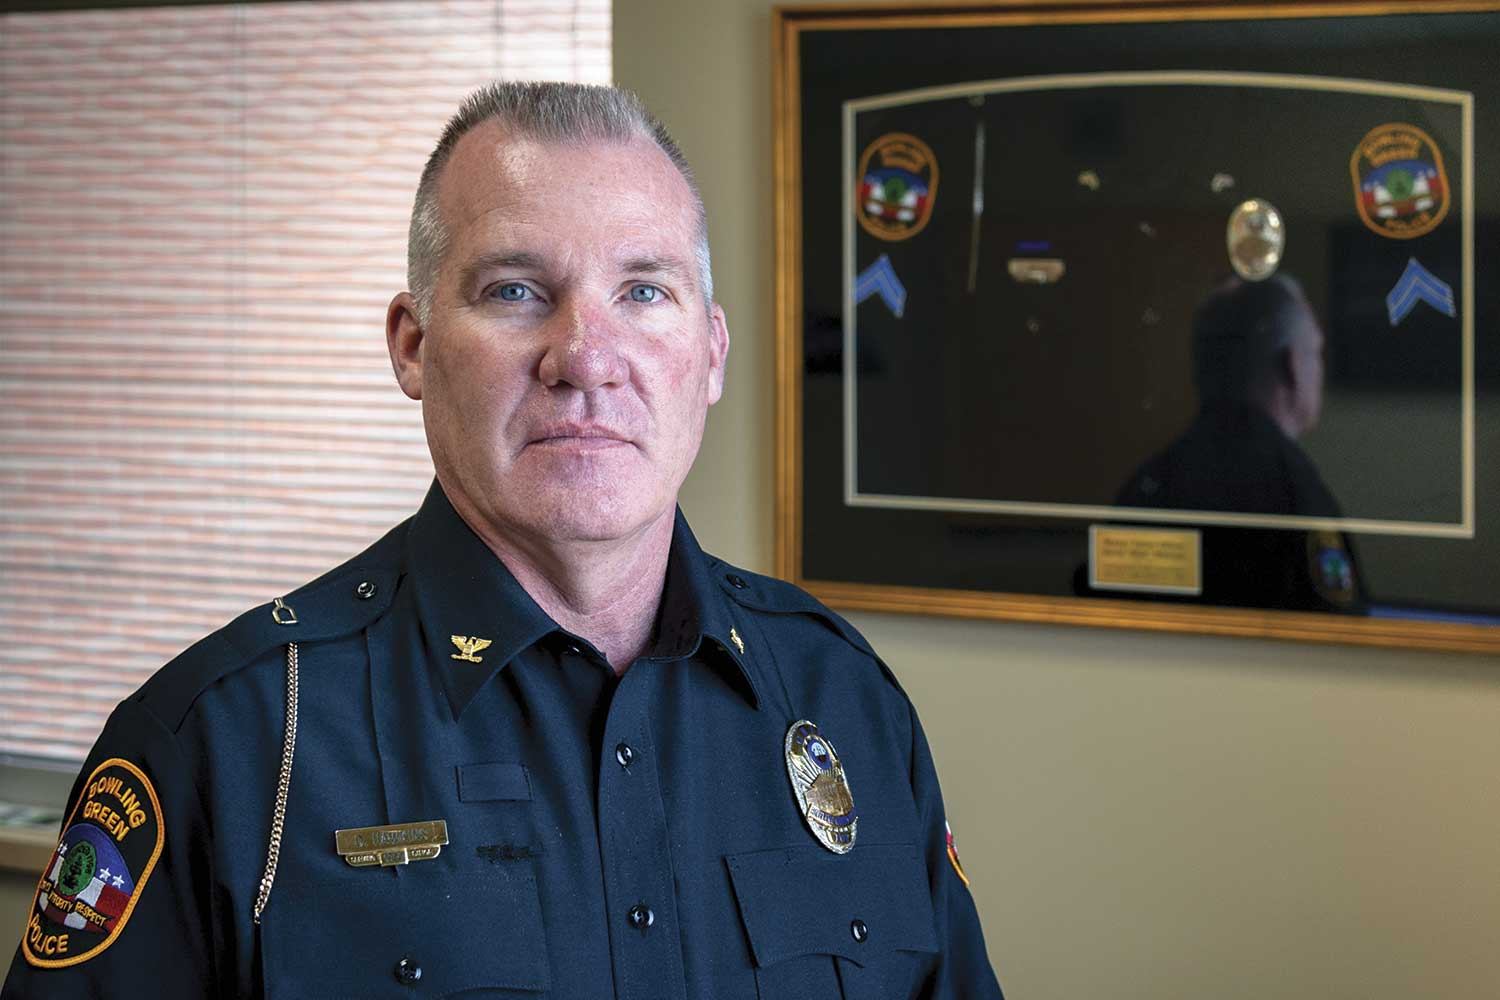 Bowling Green Police Chief Doug Hawkins said police-related skills can be taught, however character is something people have or do not have. Hiring people with quality character is the first step in the development process. (Photo by Jim Robertson)